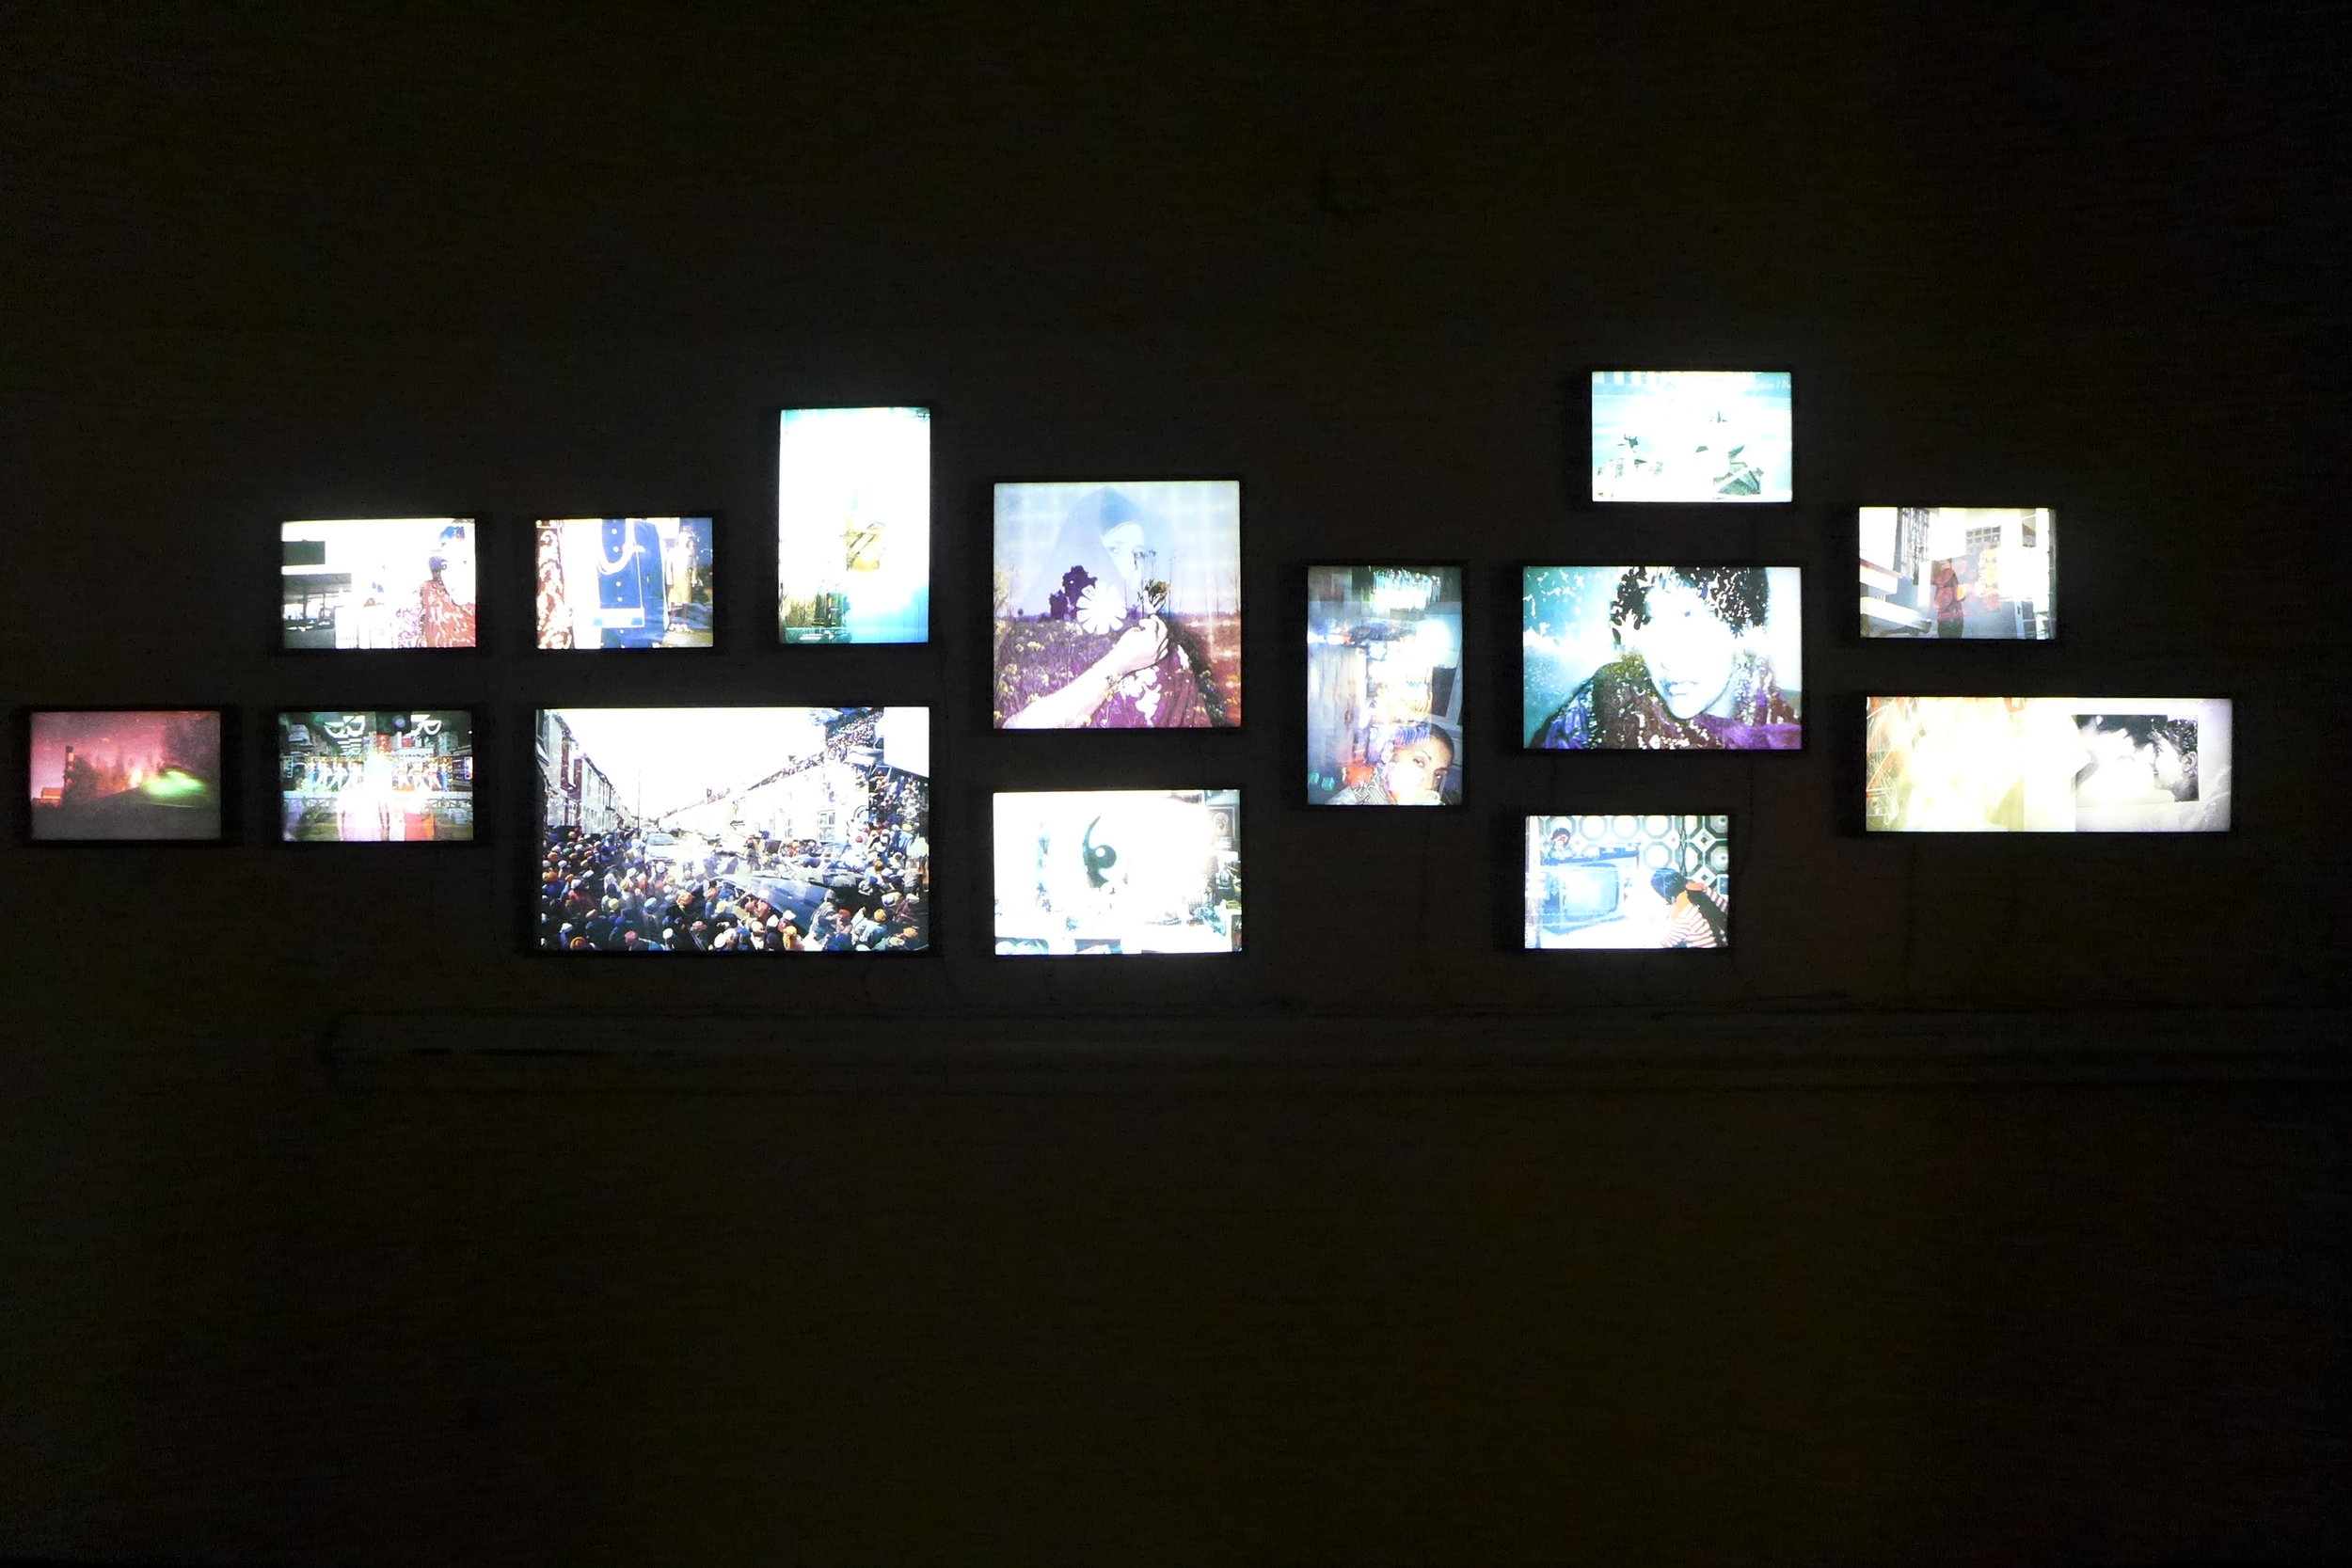 Uzma Mohsin displays her multi-layered images in light boxes and via a projection piece